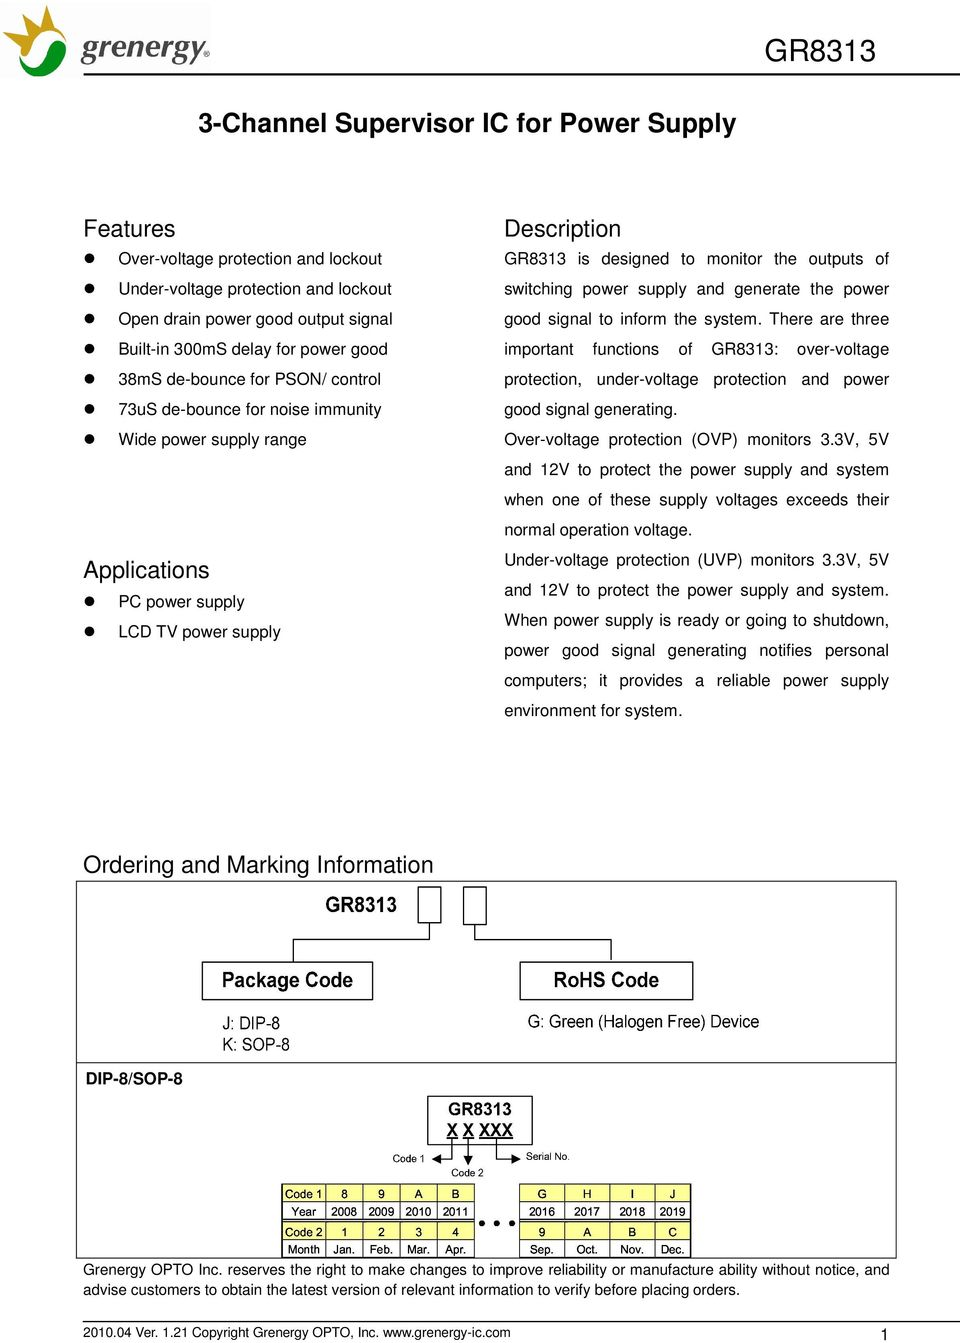 3 Channel Supervisor Ic For Power Supply Pdf Surges Circuit Protection Ics Content From Switching And Generate The Good Signal To Inform System